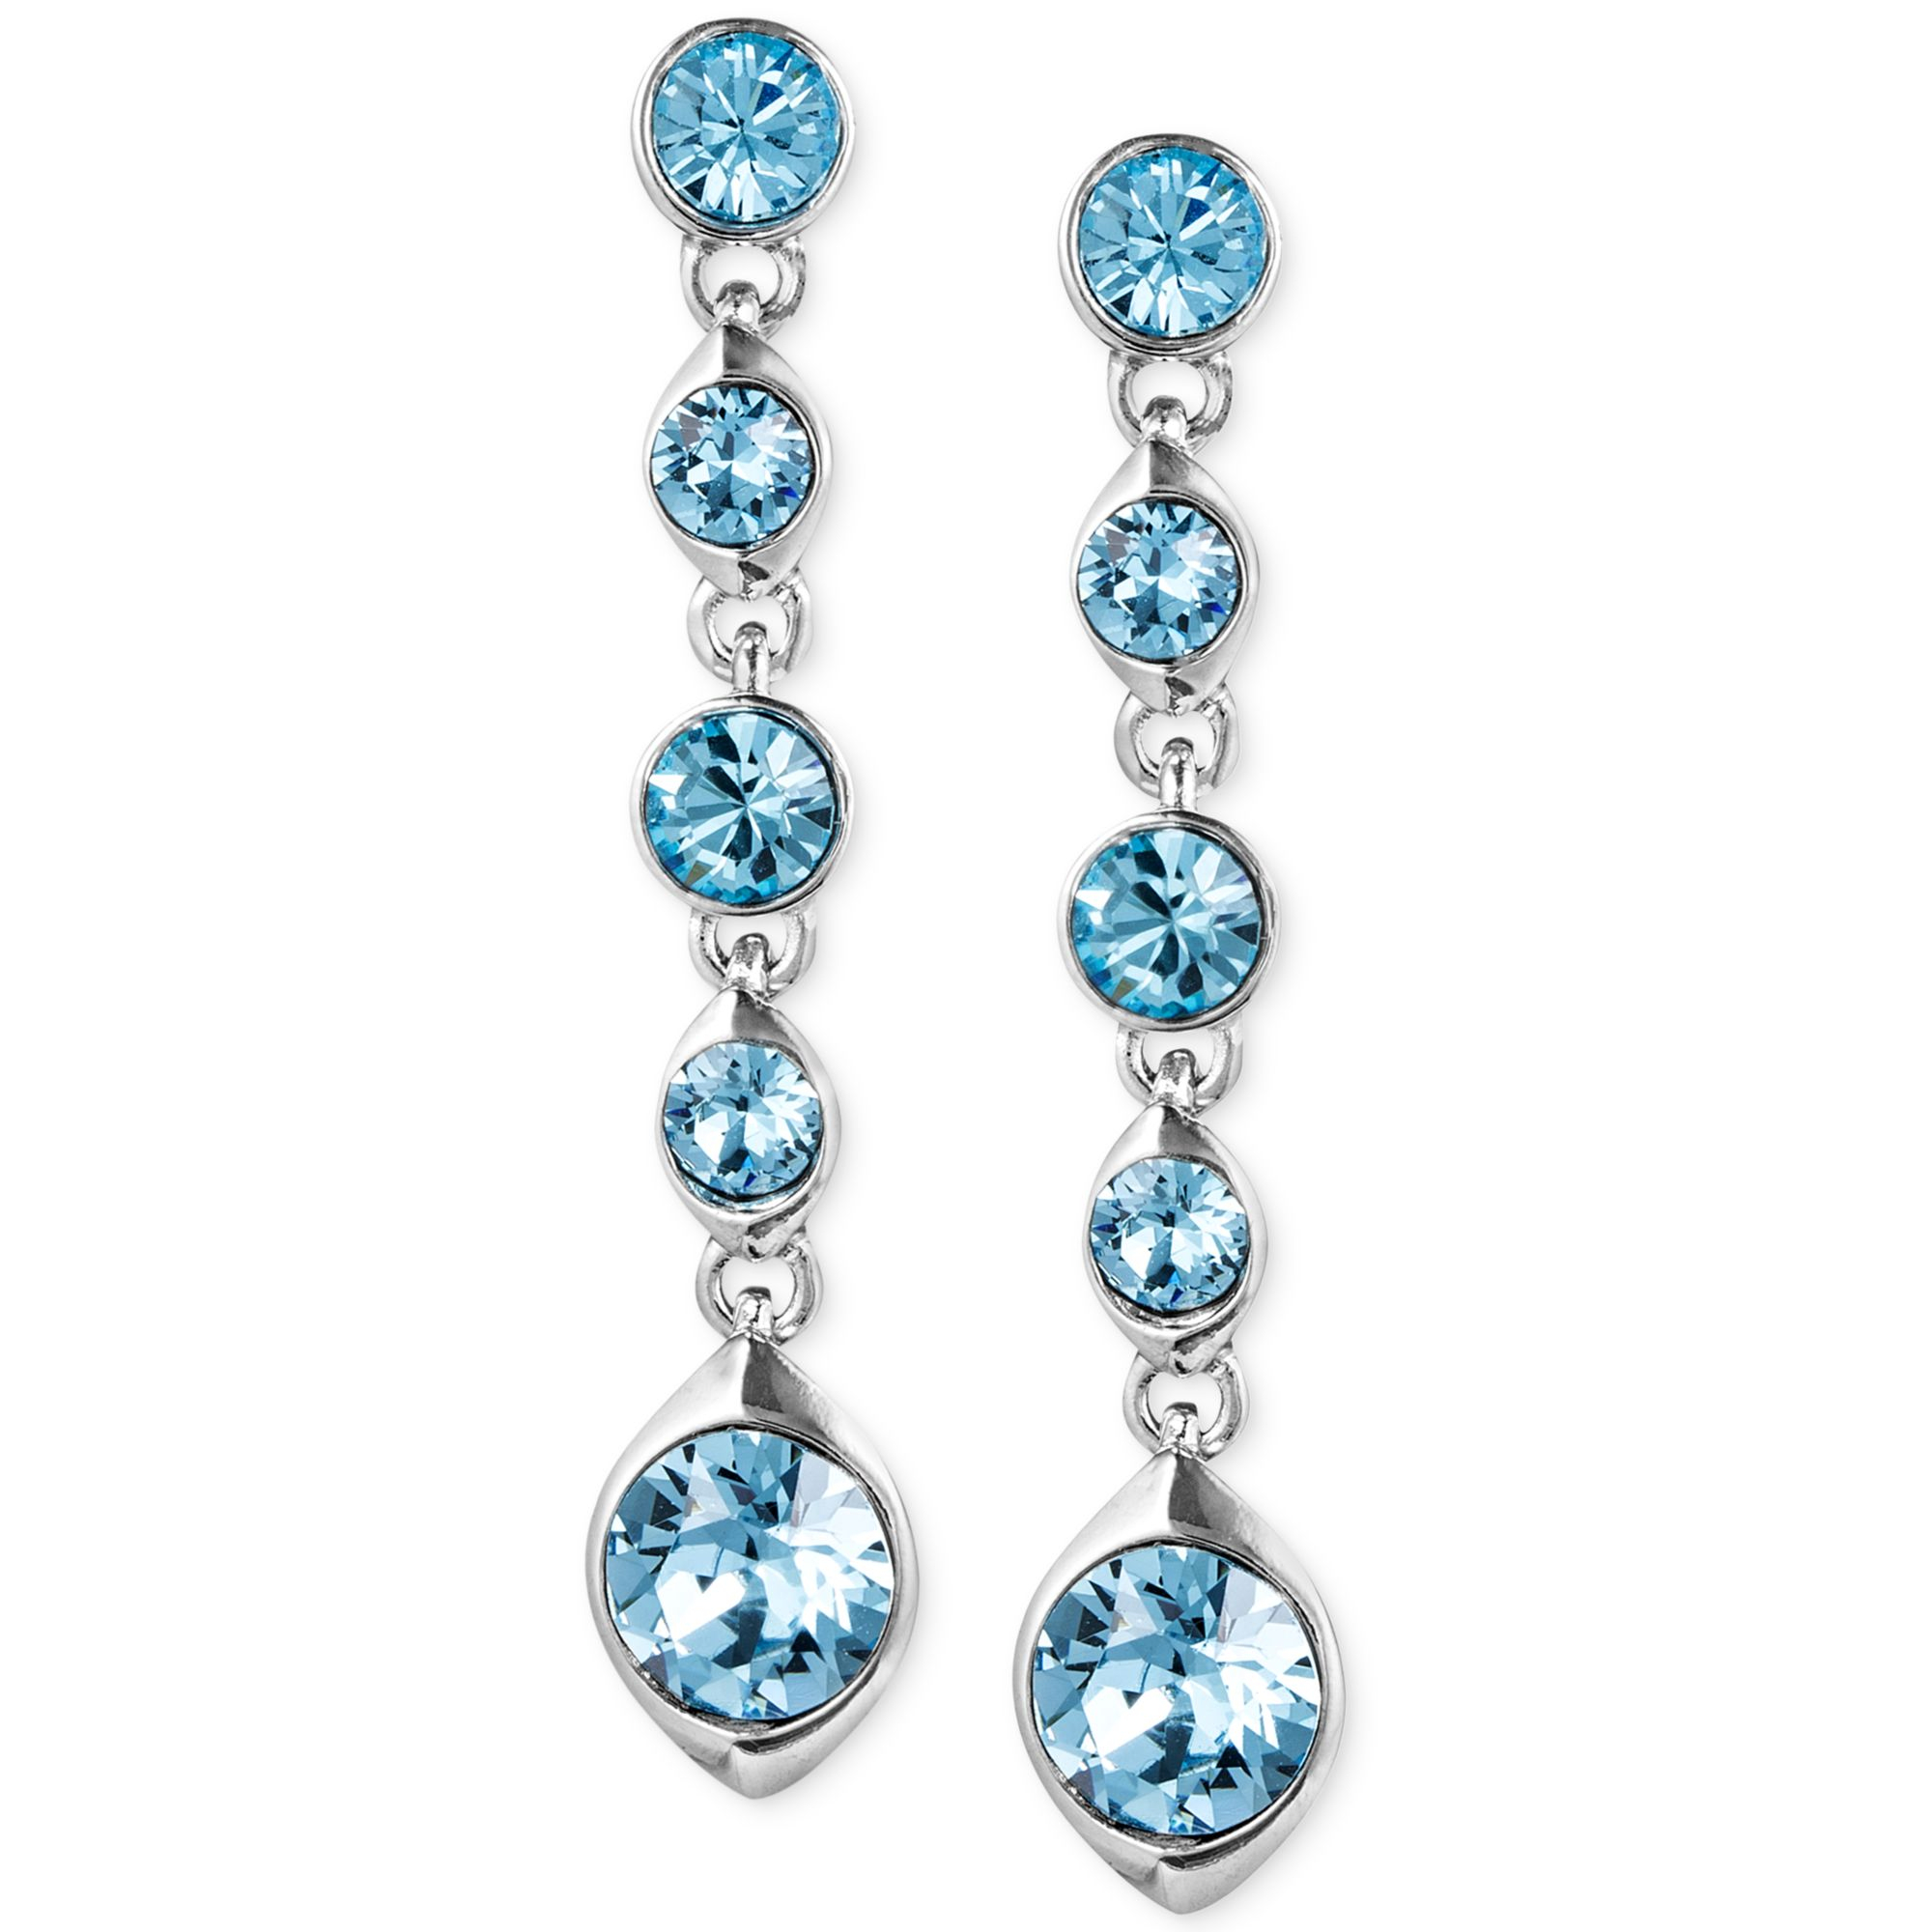 givenchy silver tone aqua linear earrings in blue